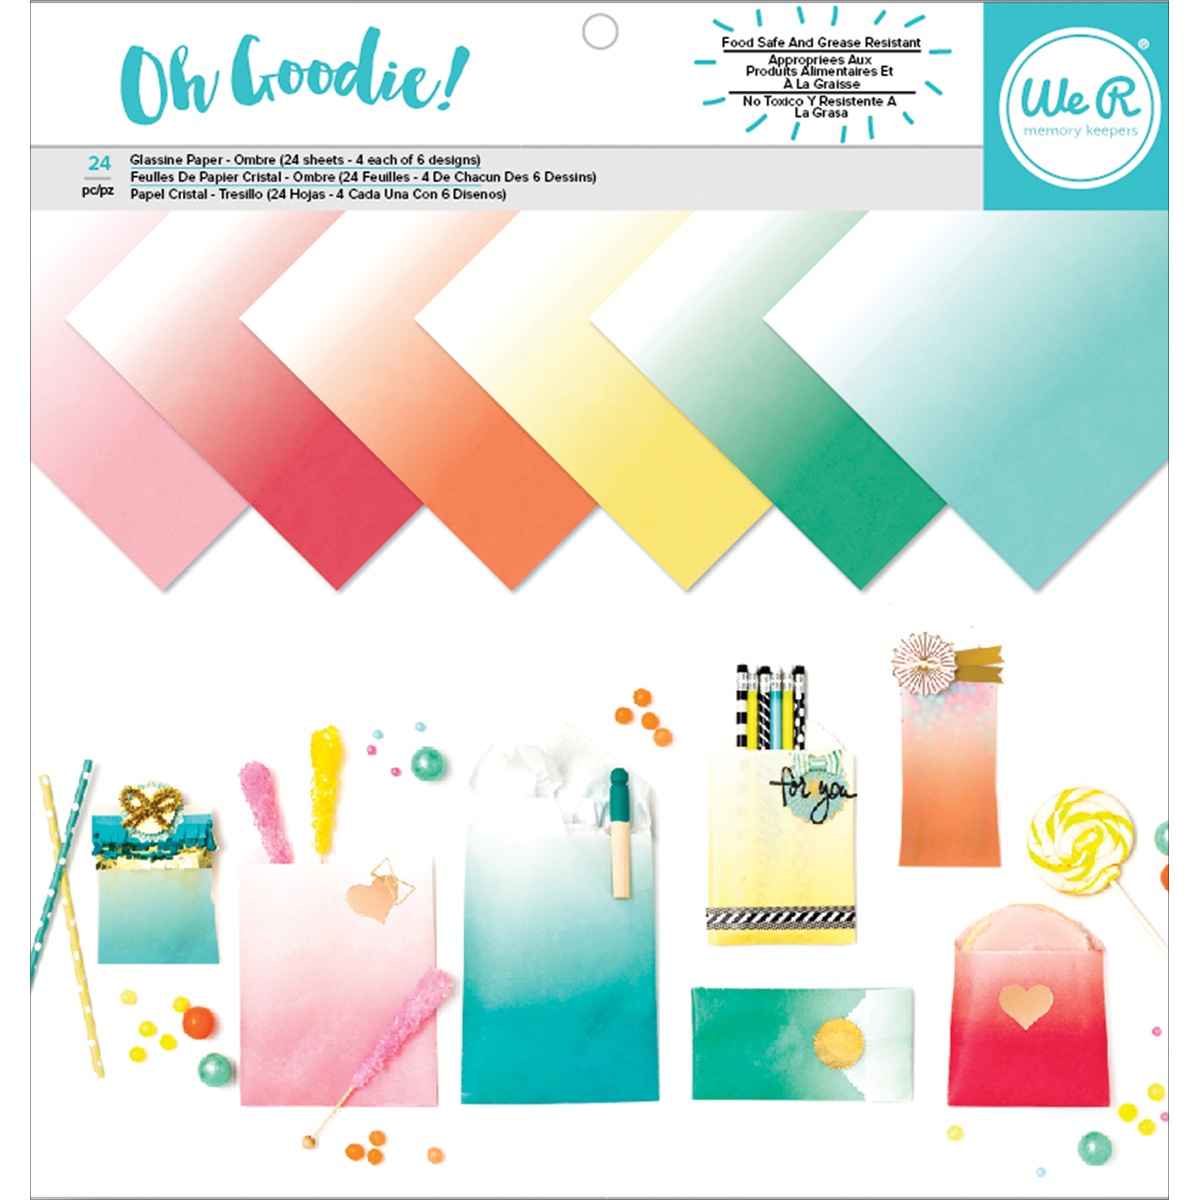 "We R Memory Keepers Glassine Paper Pack, 12"" x 12"", 24pk, Oh Goodie! Ombre"